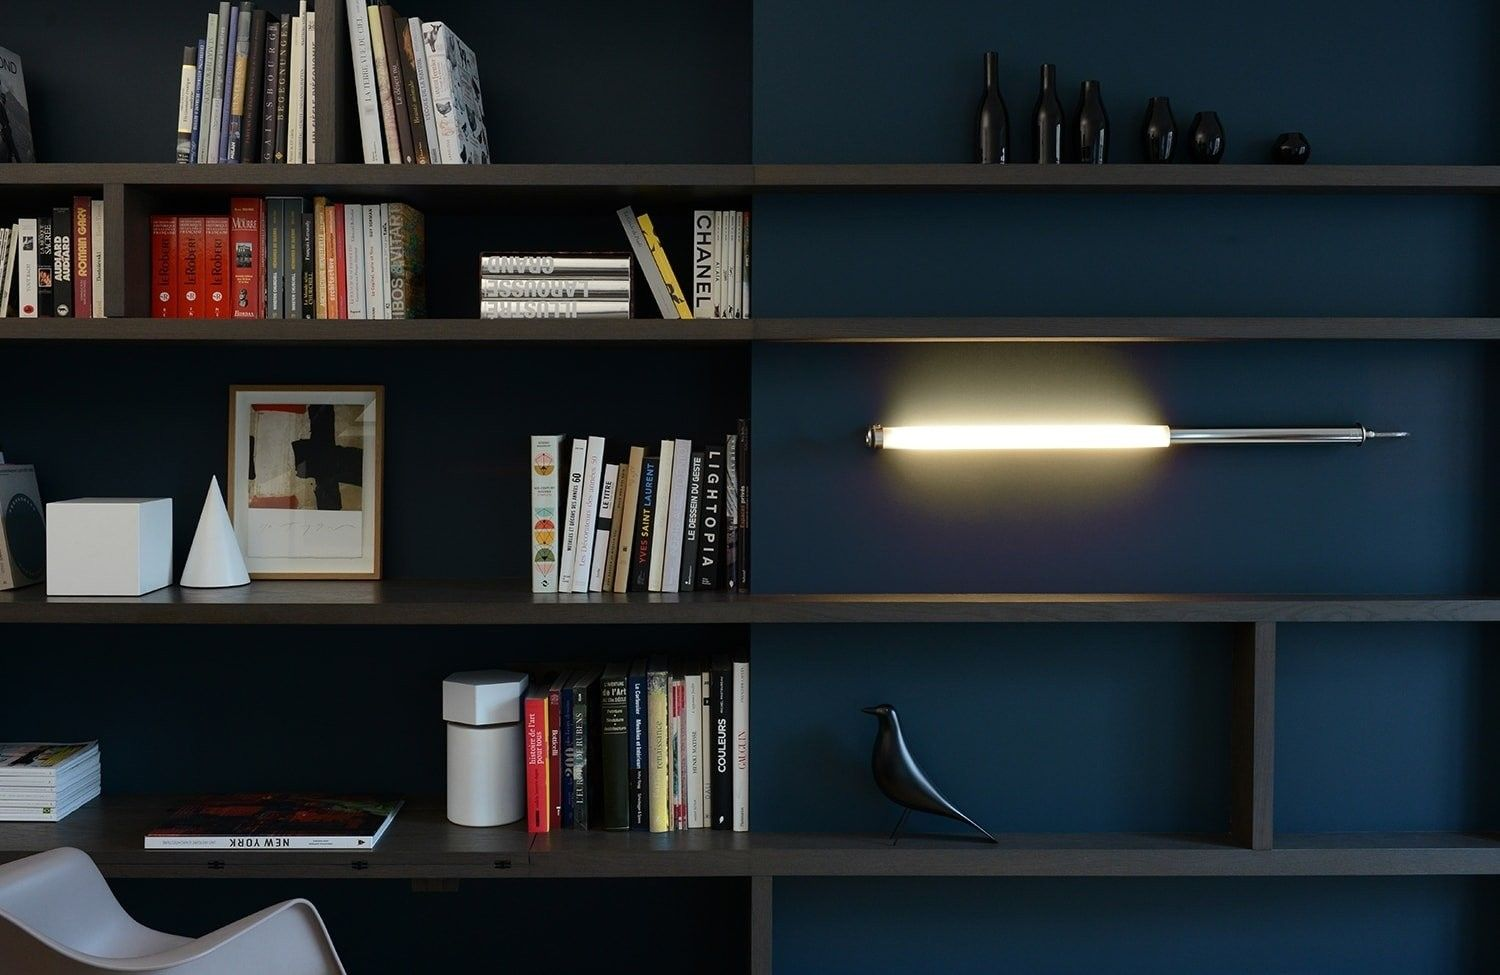 Applique led mondrian design sammode argenté 计划计划